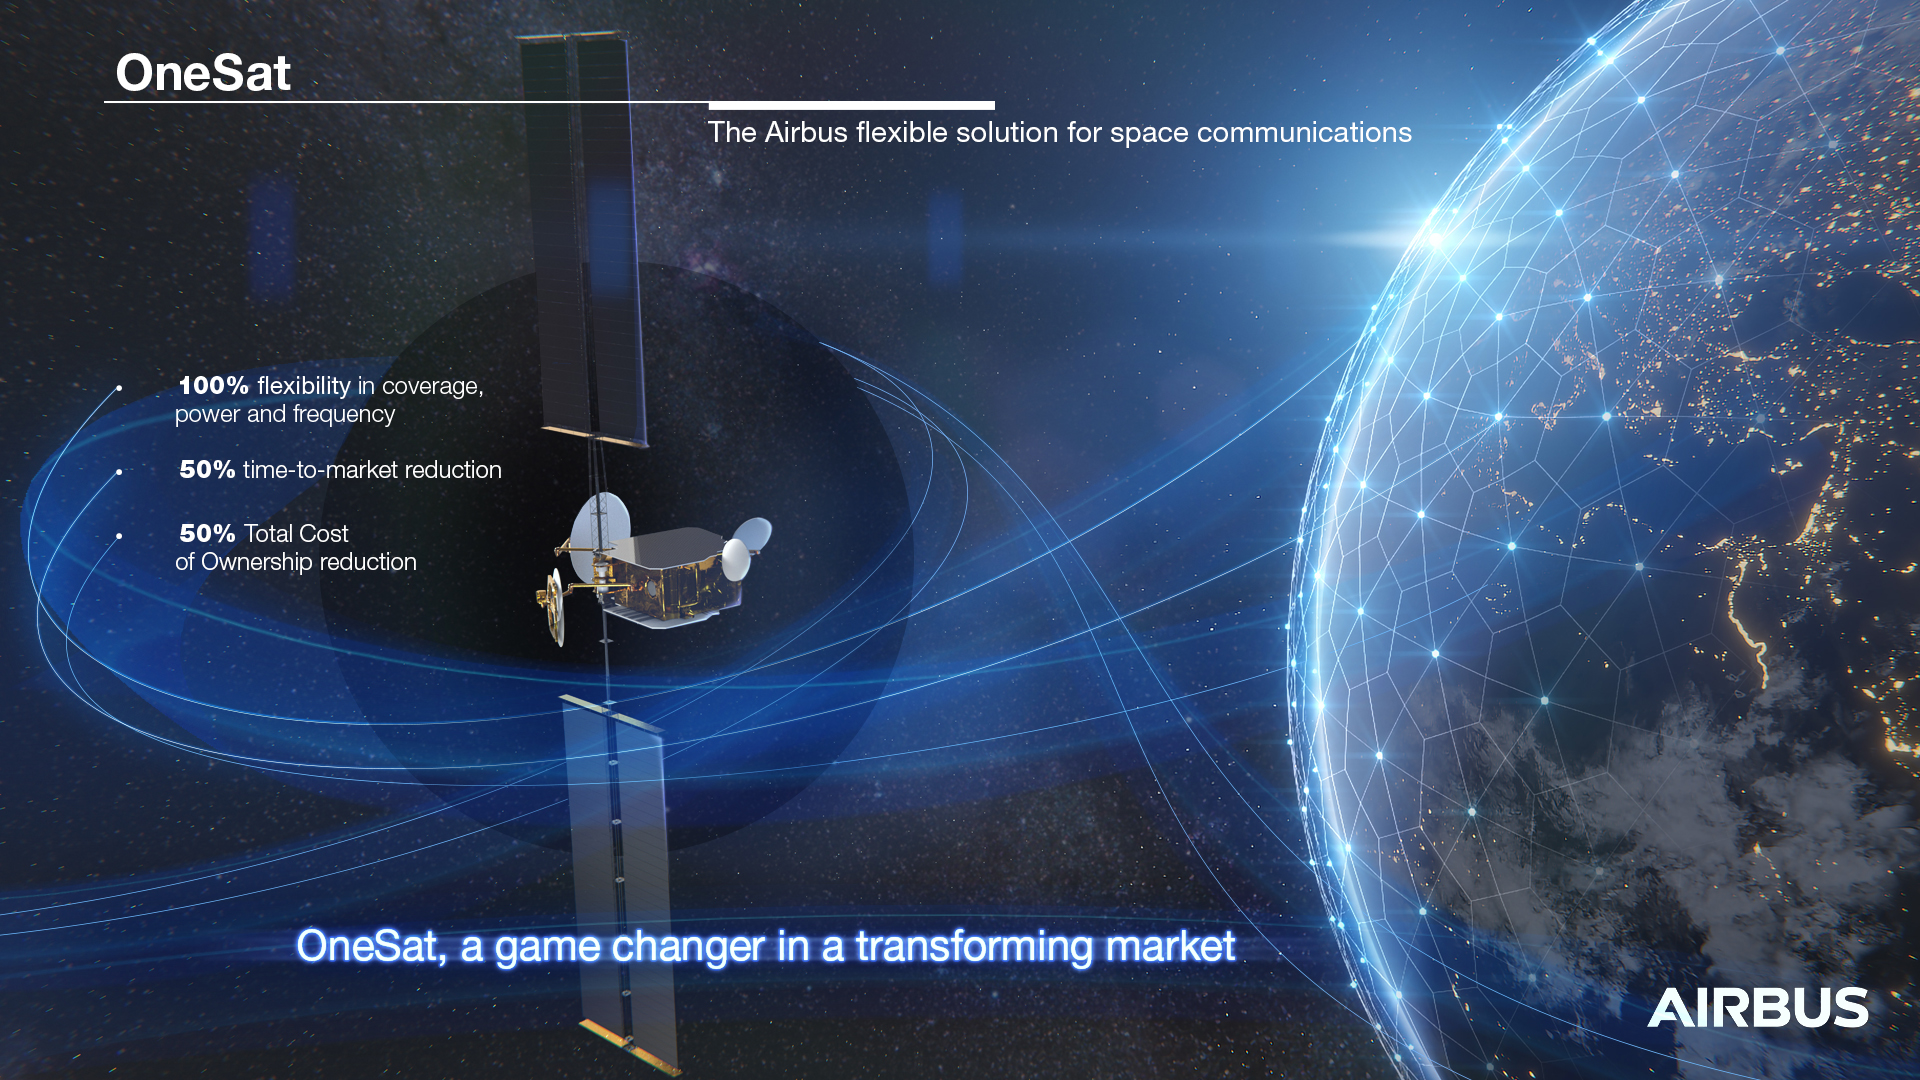 An infographic highlighting key operational benefits of Airbus' OneSat satellite platform.